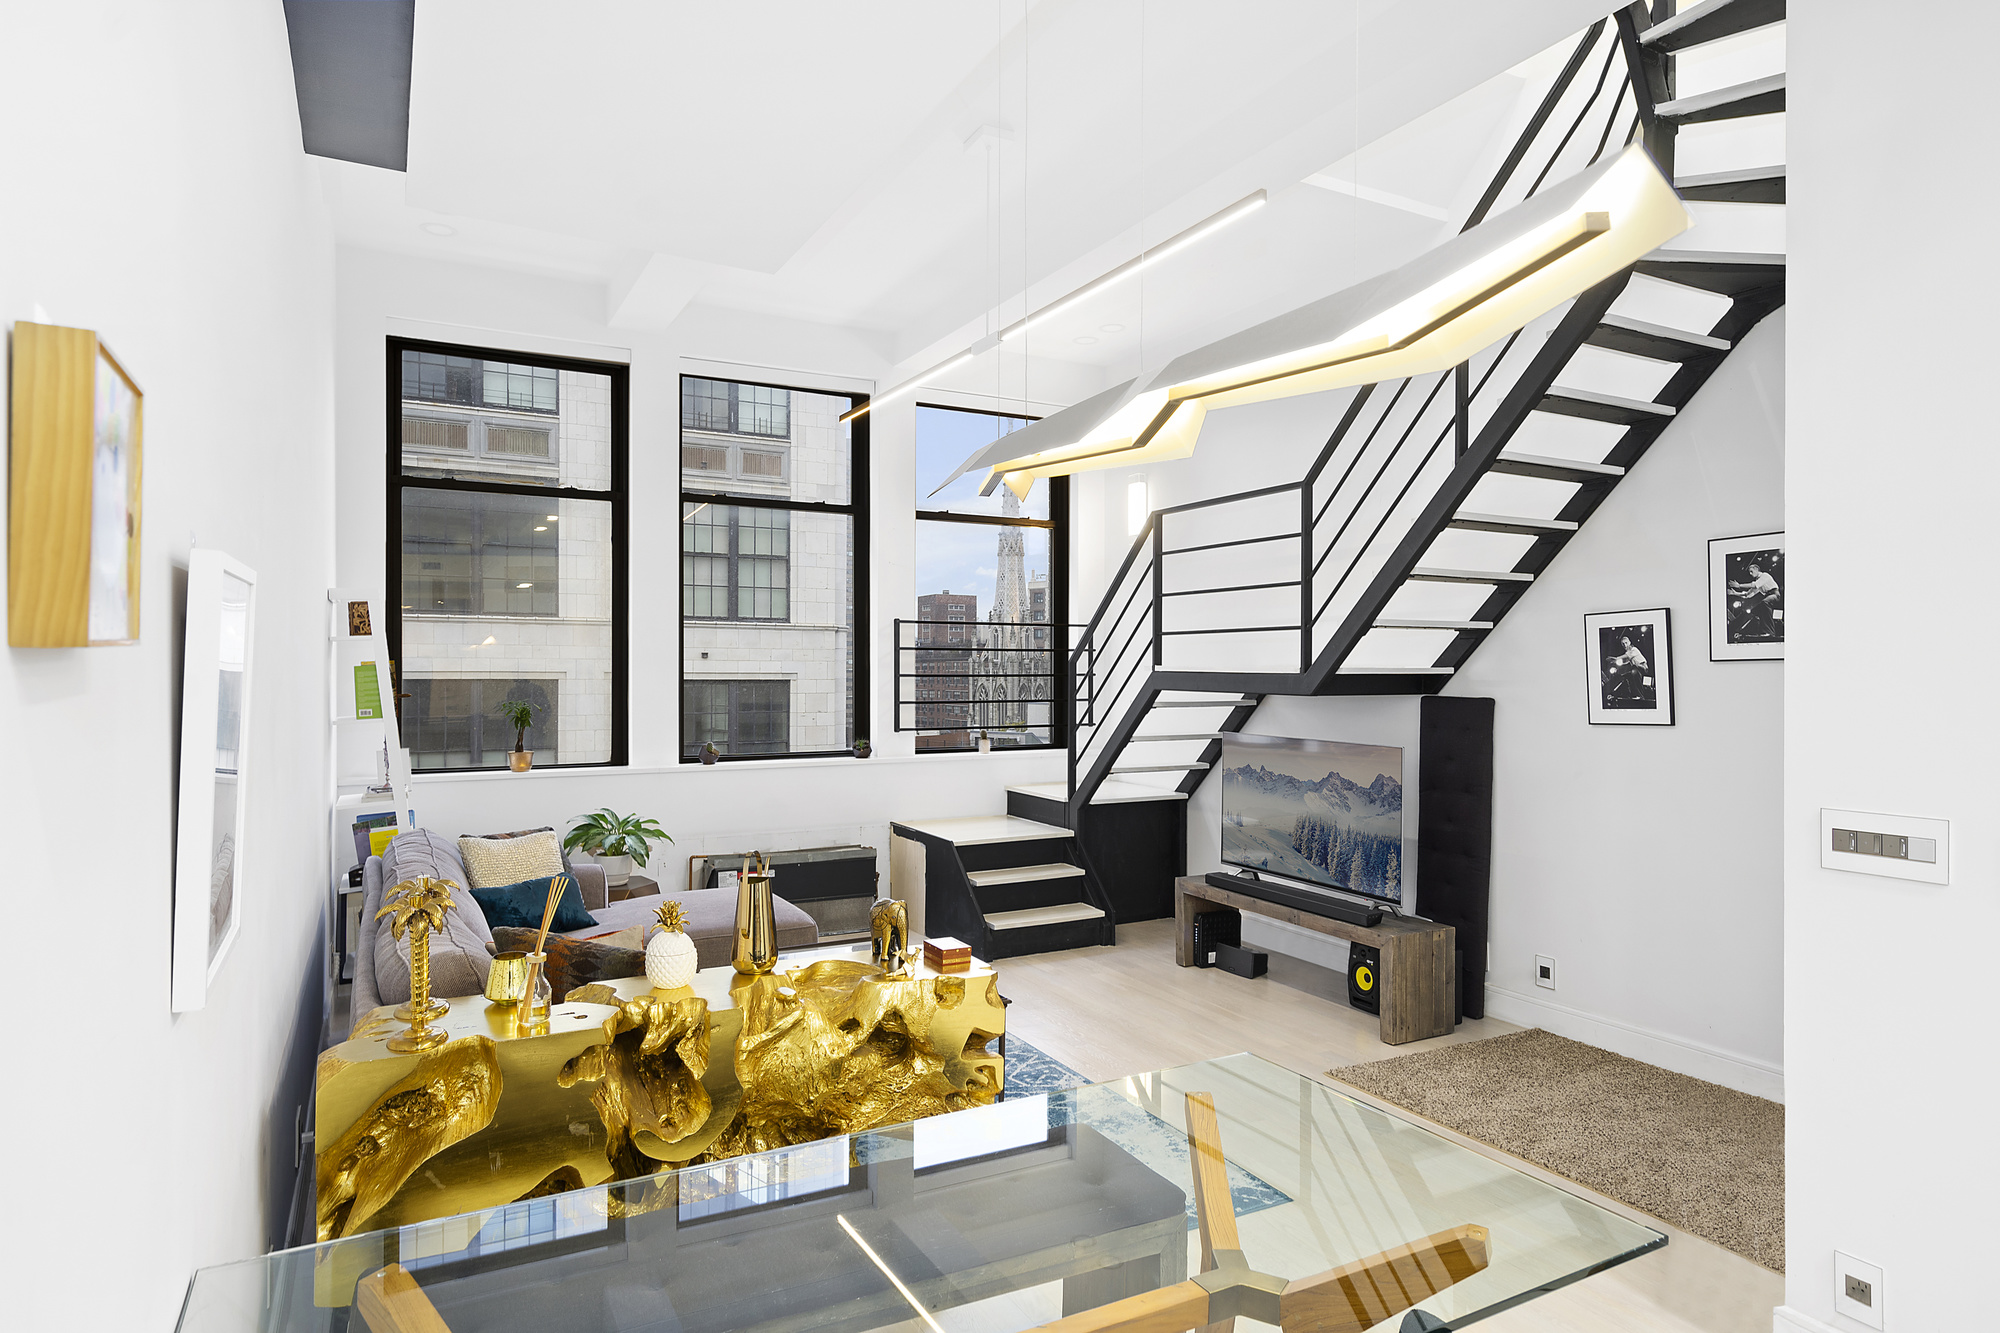 4th Ave Duplex Private Residence